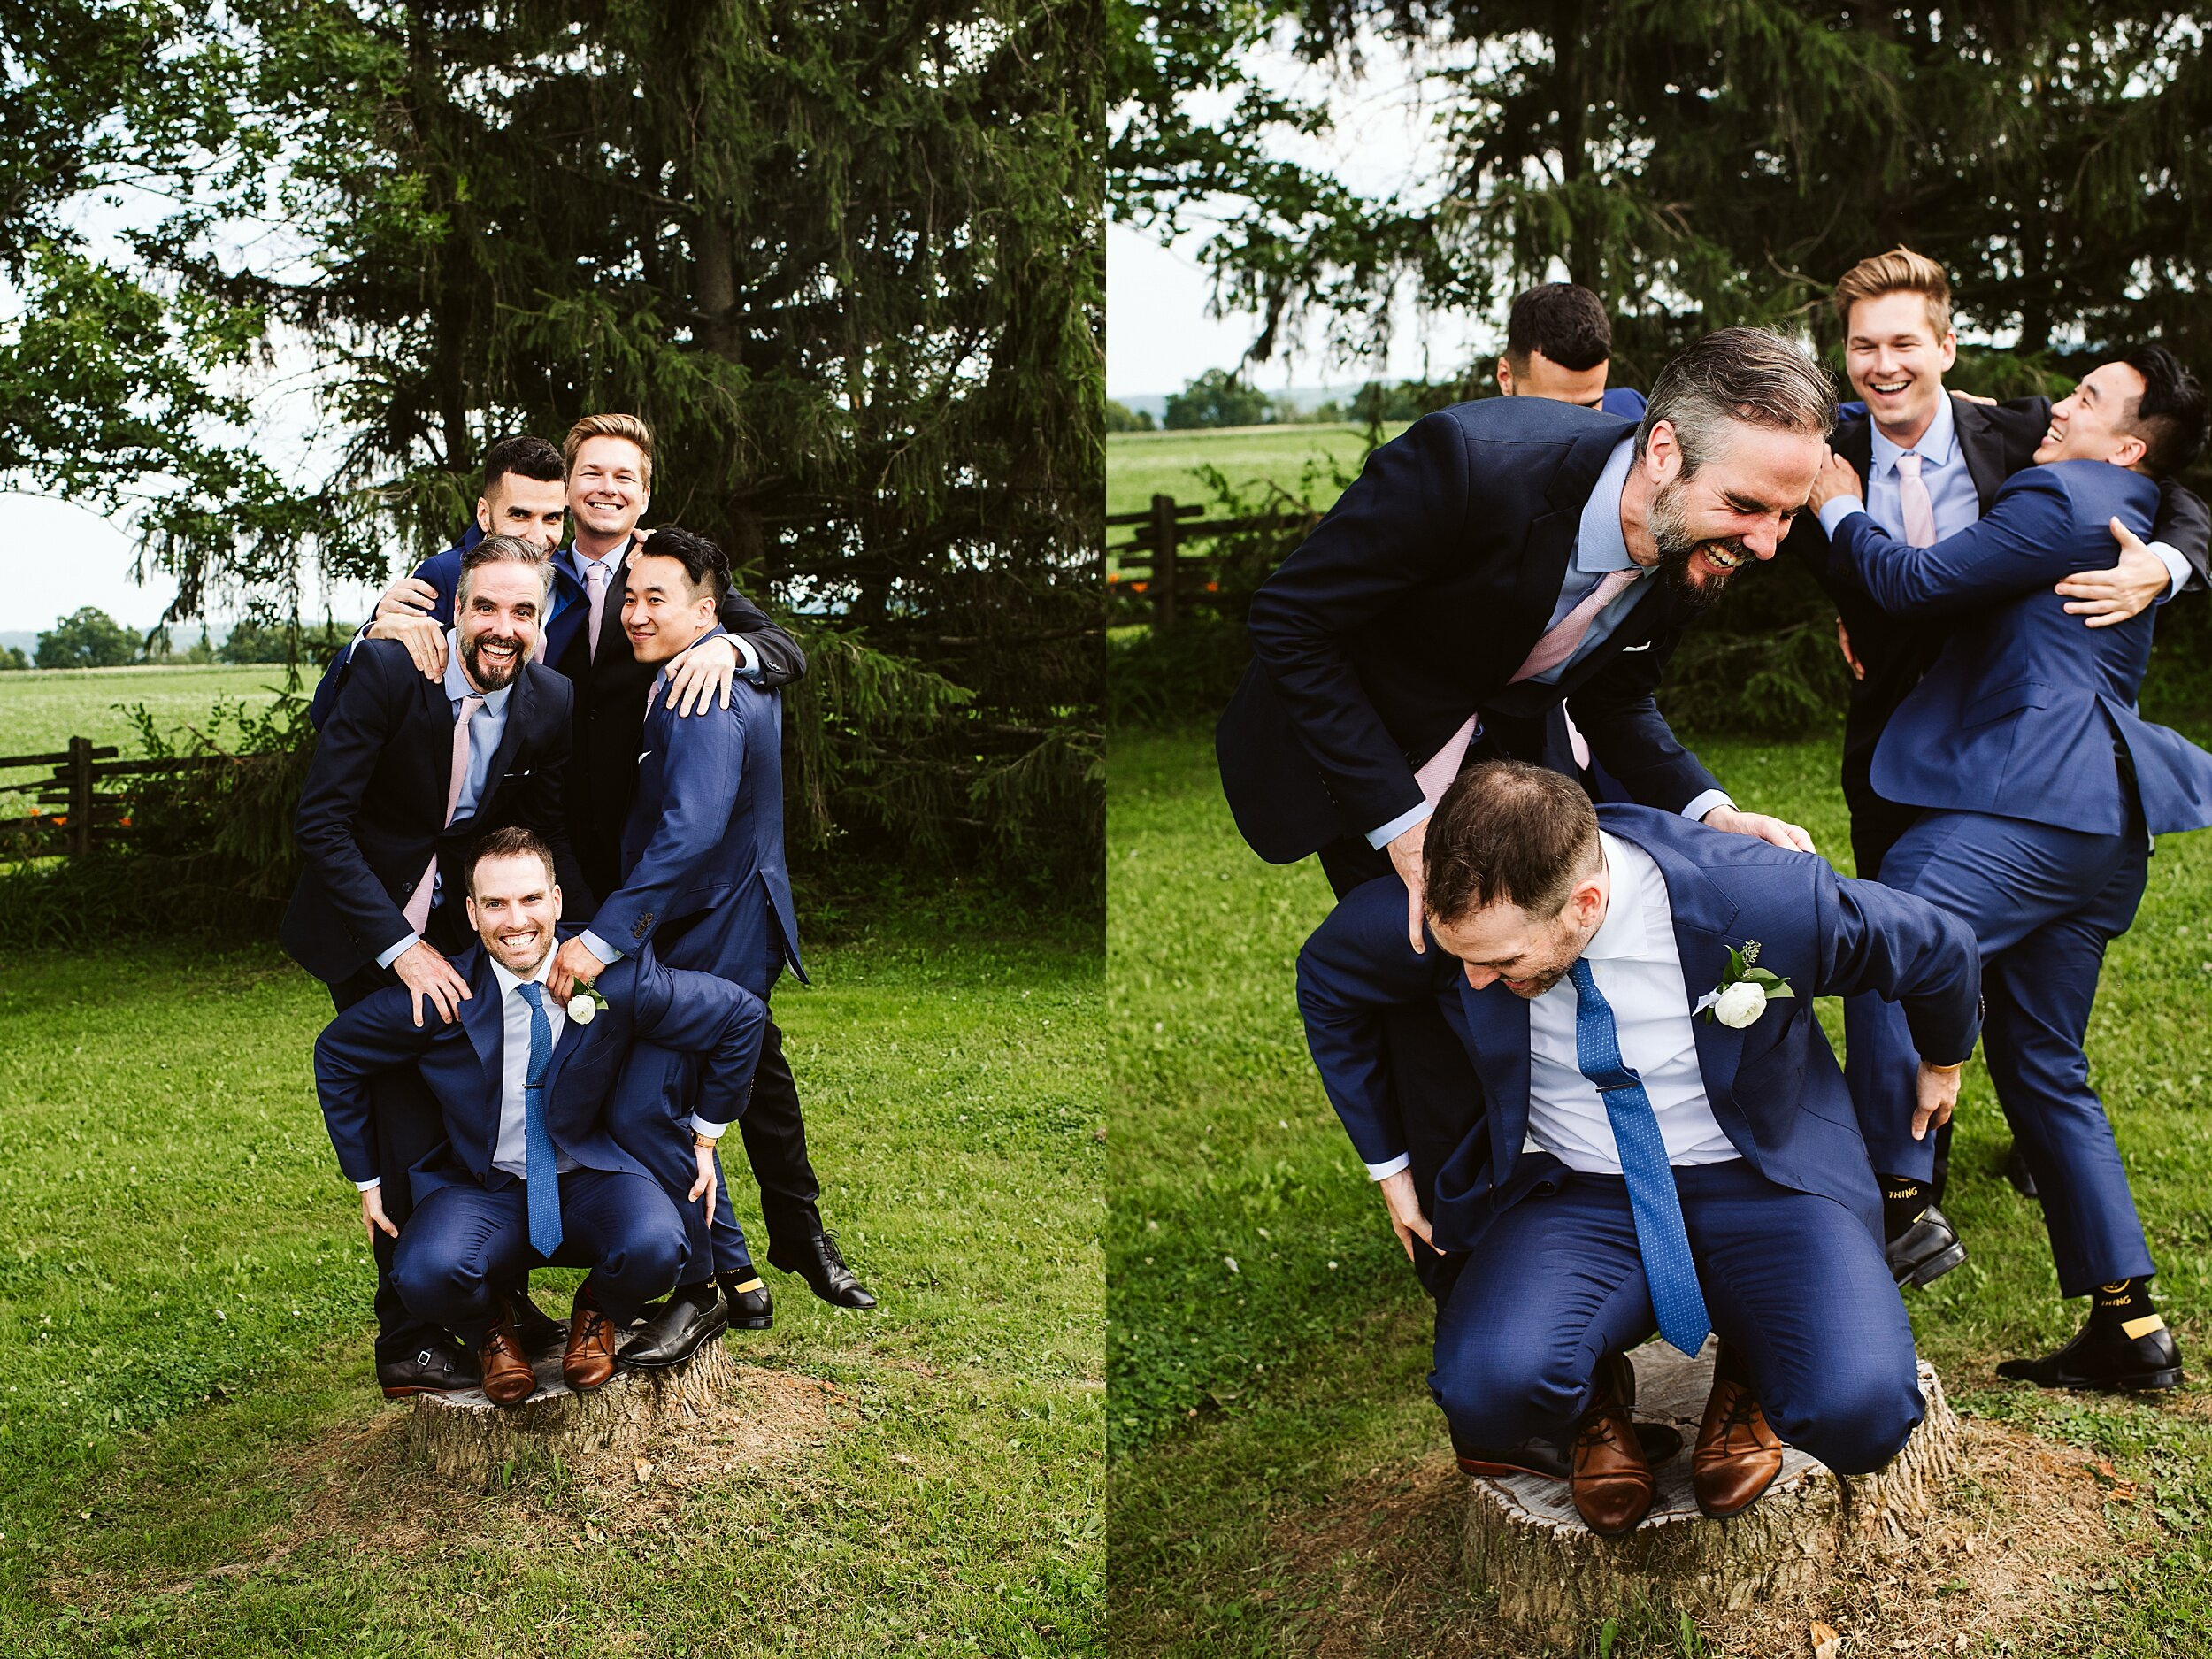 Glen_Drummon_Farm_Wedding_Toronto_Photographers_Fox_Photography_Dyments_0041.jpg